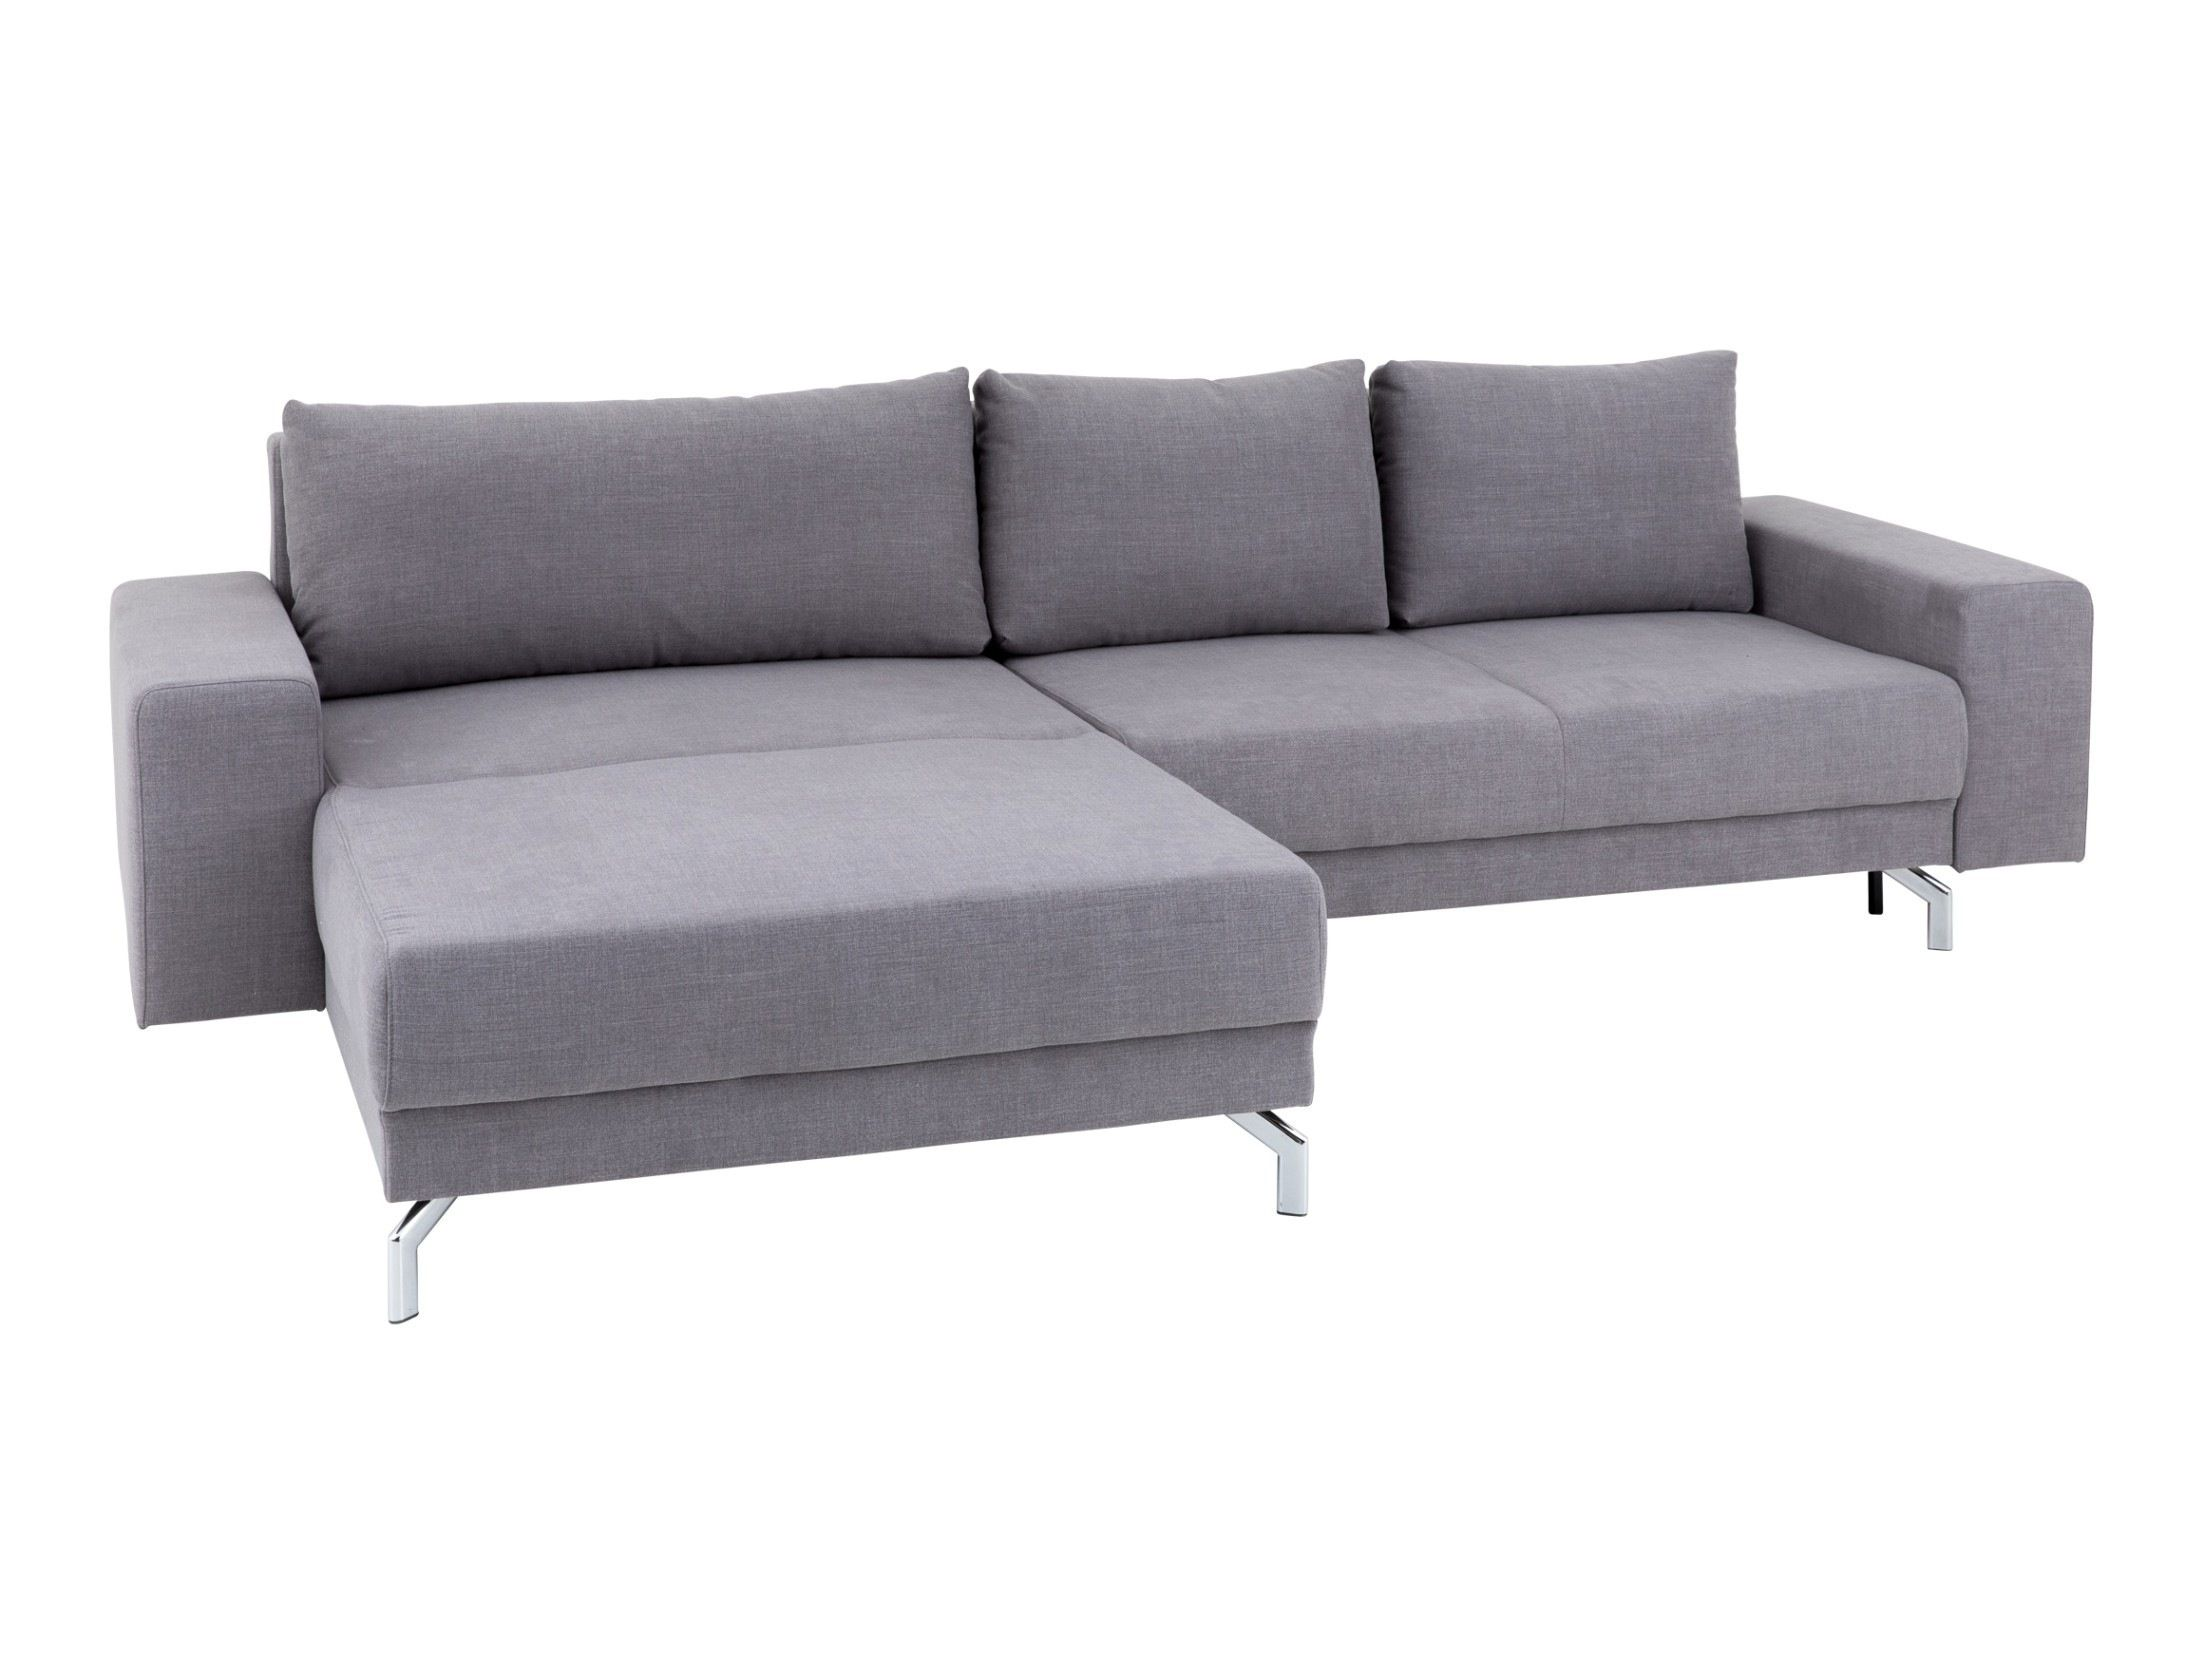 Perfect Schlafsofa Federkern Dauerschlafer Furniture Couch Decor